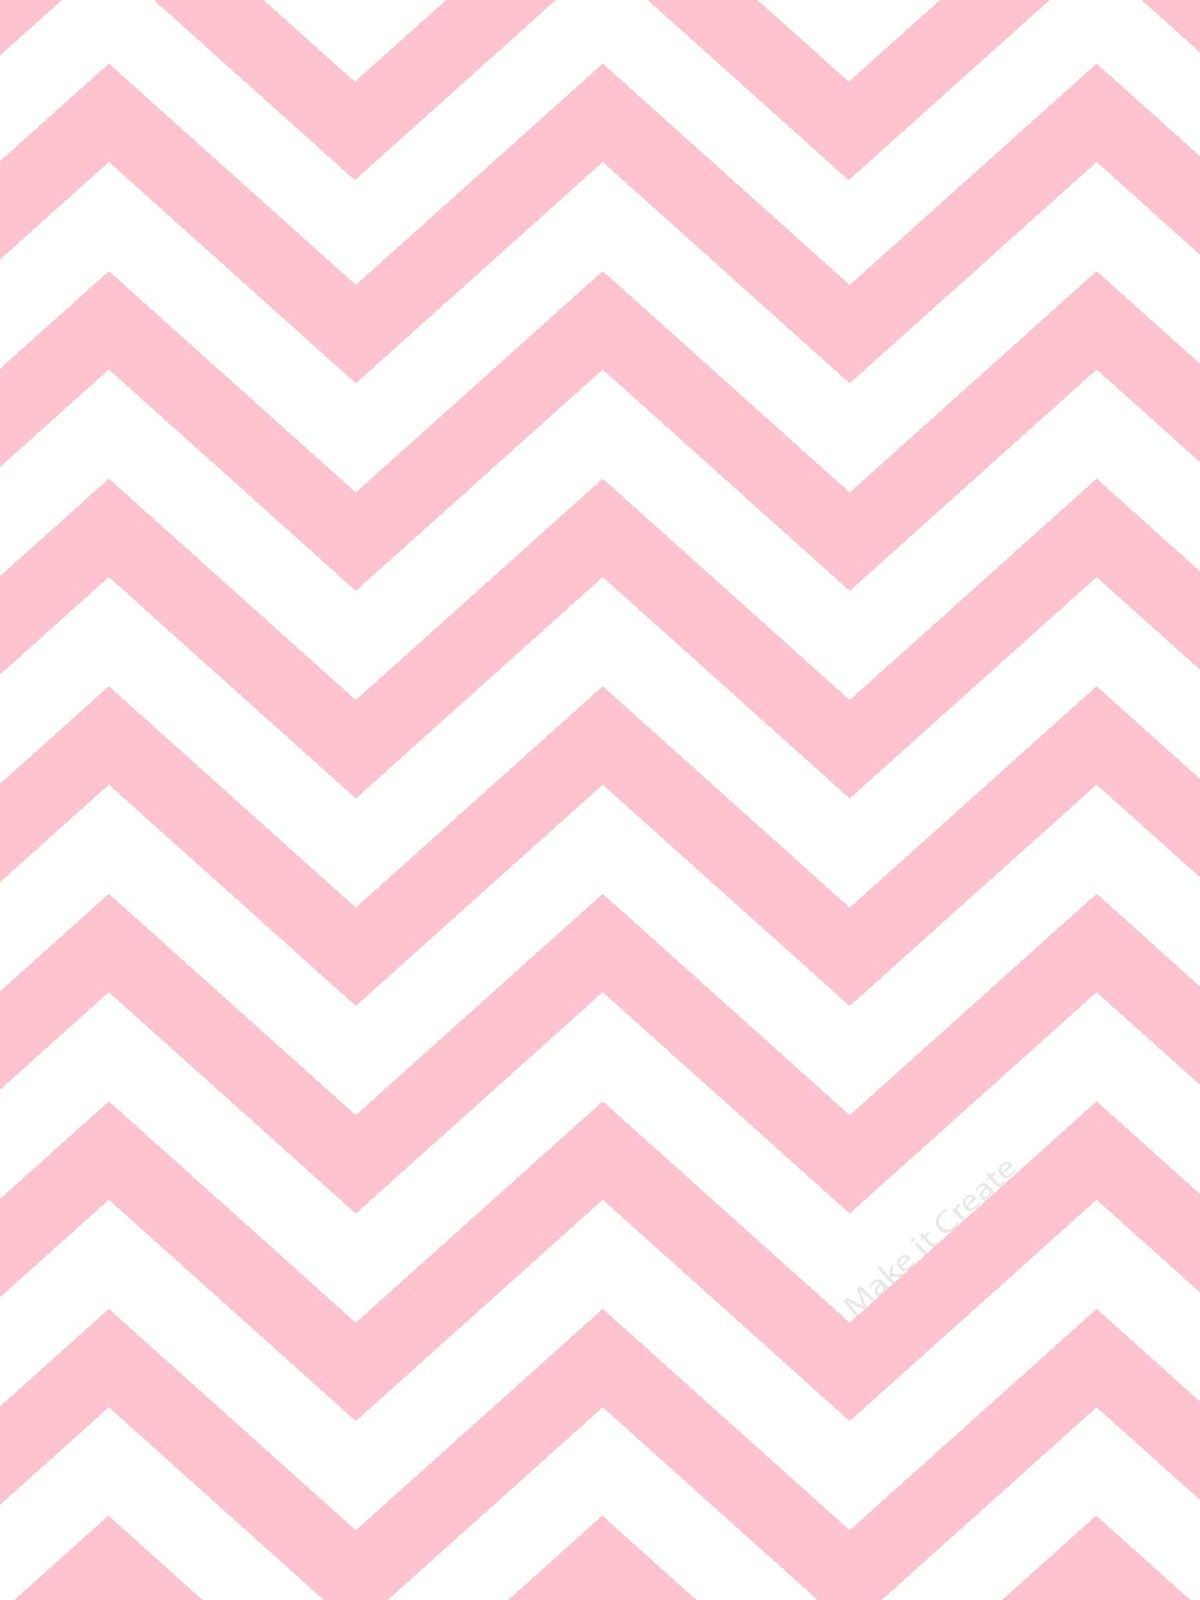 Pink background clipart #8